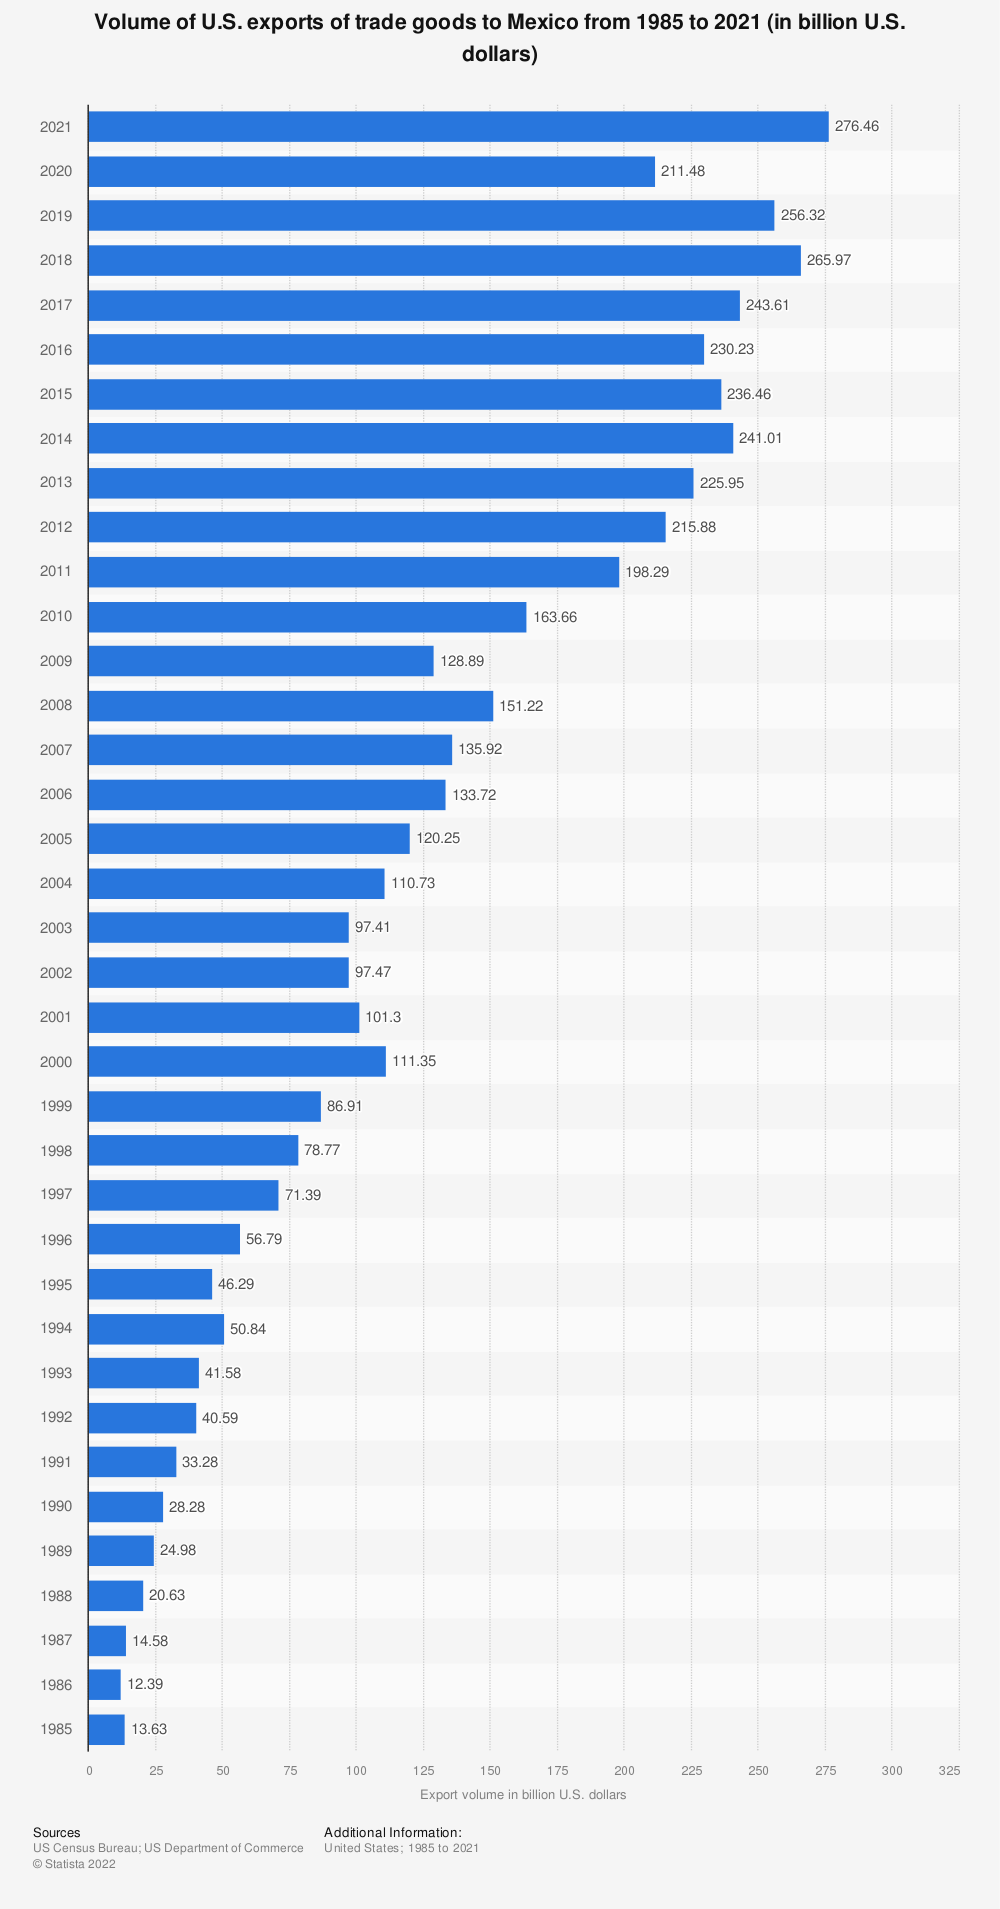 Statistic: Volume of U.S. exports of trade goods to Mexico from 1985 to 2019 (in billion U.S. dollars) | Statista